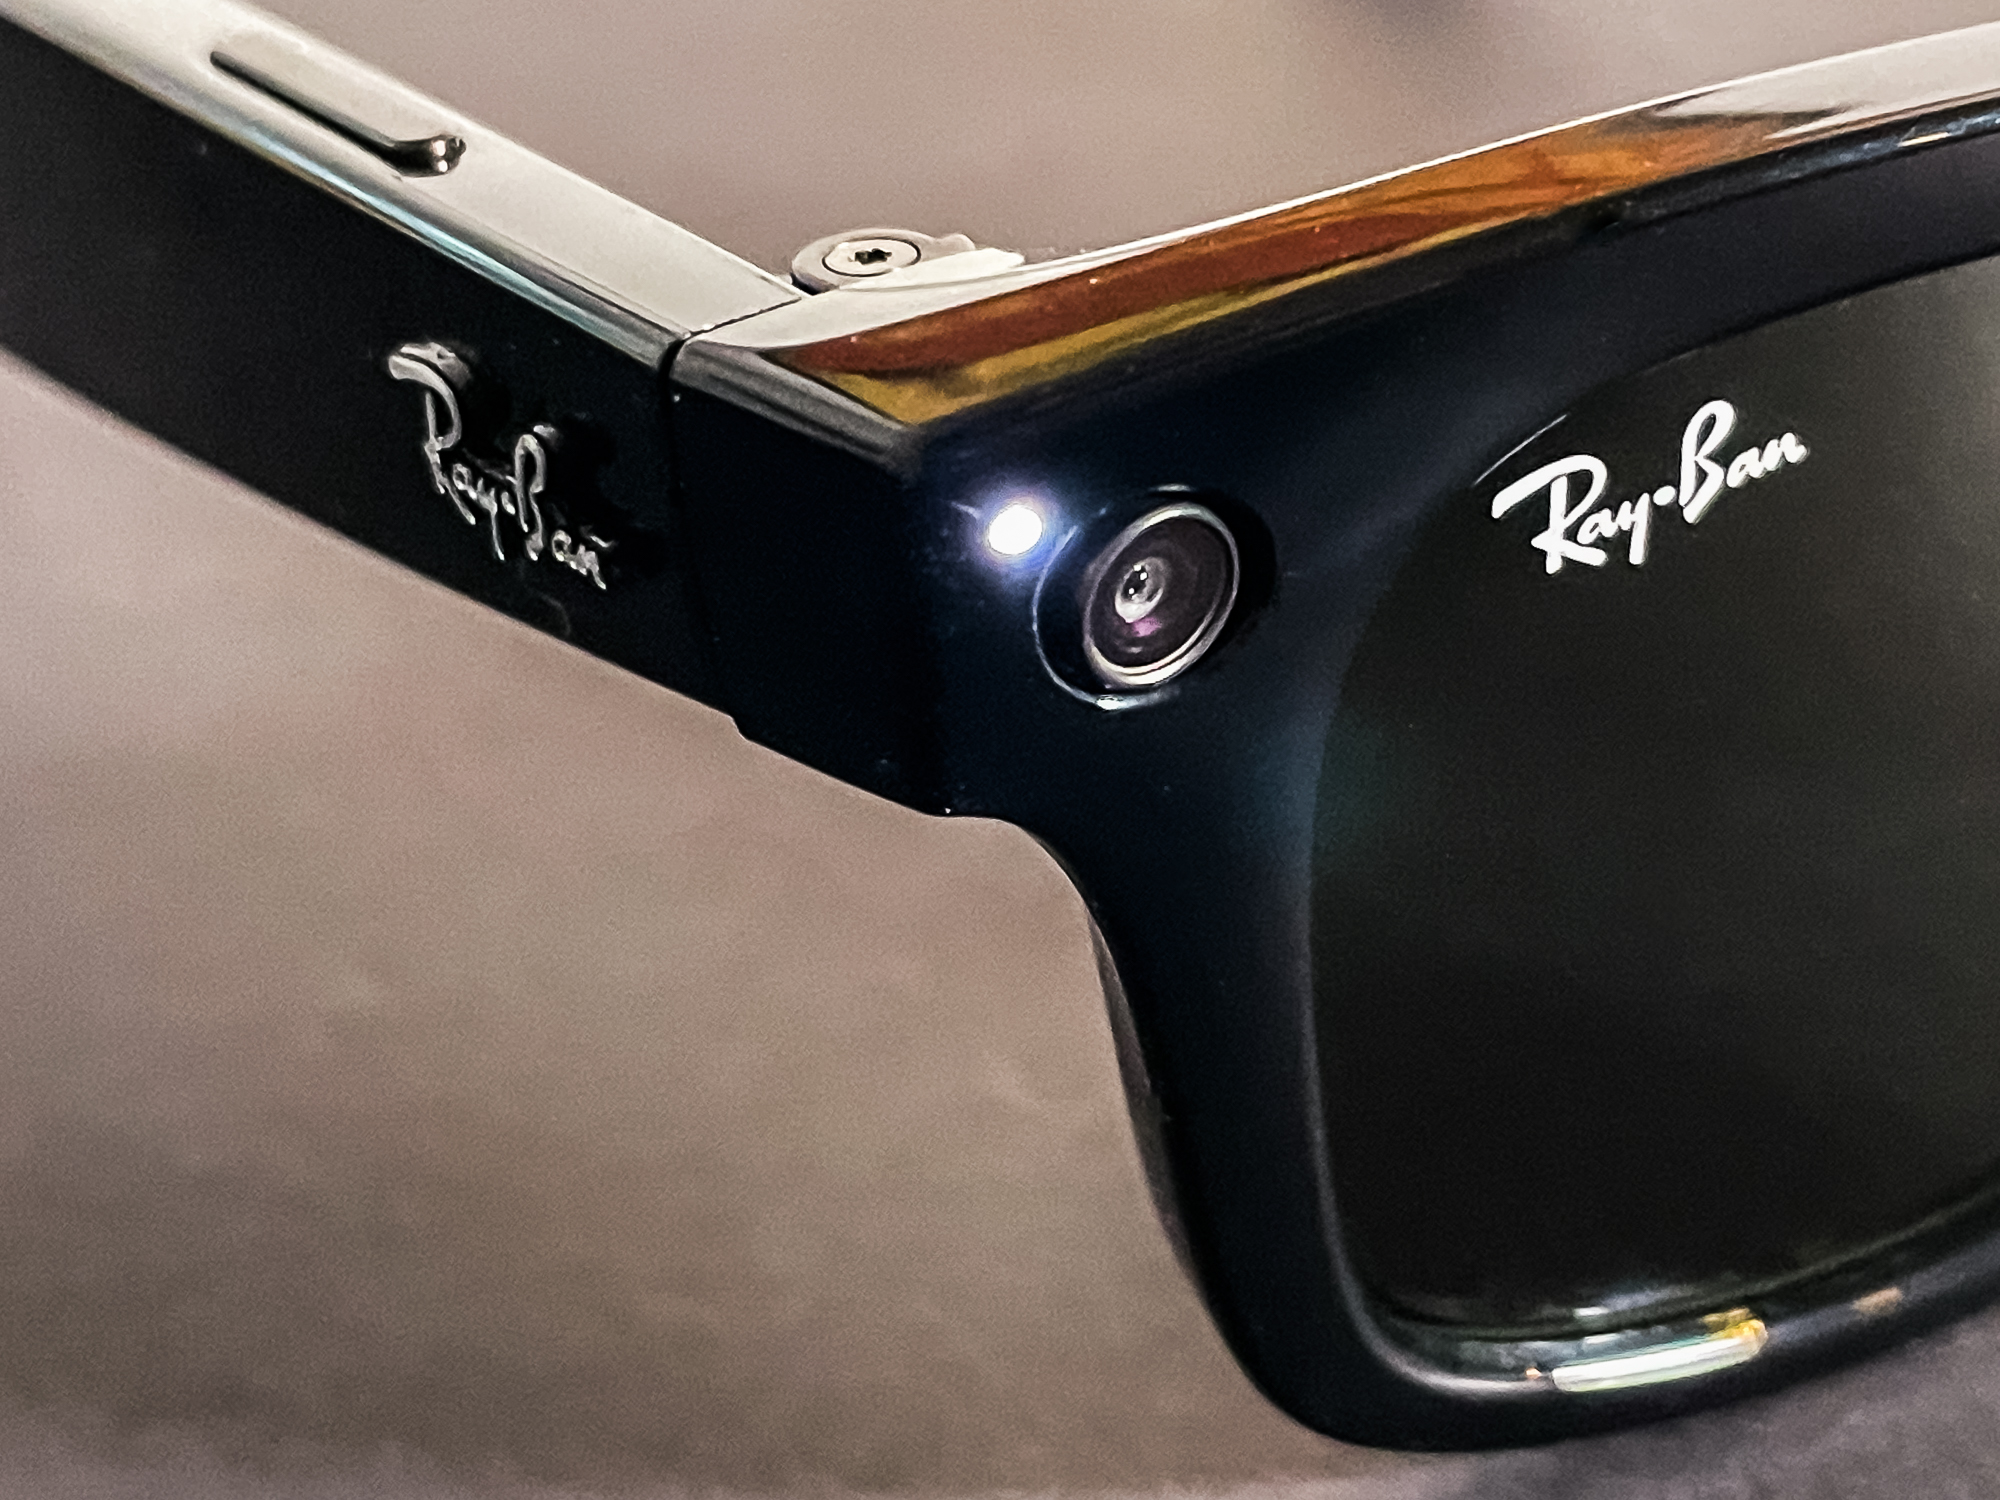 Facebook's smart Ray-Ban glasses are disappointingly familiar - CNET